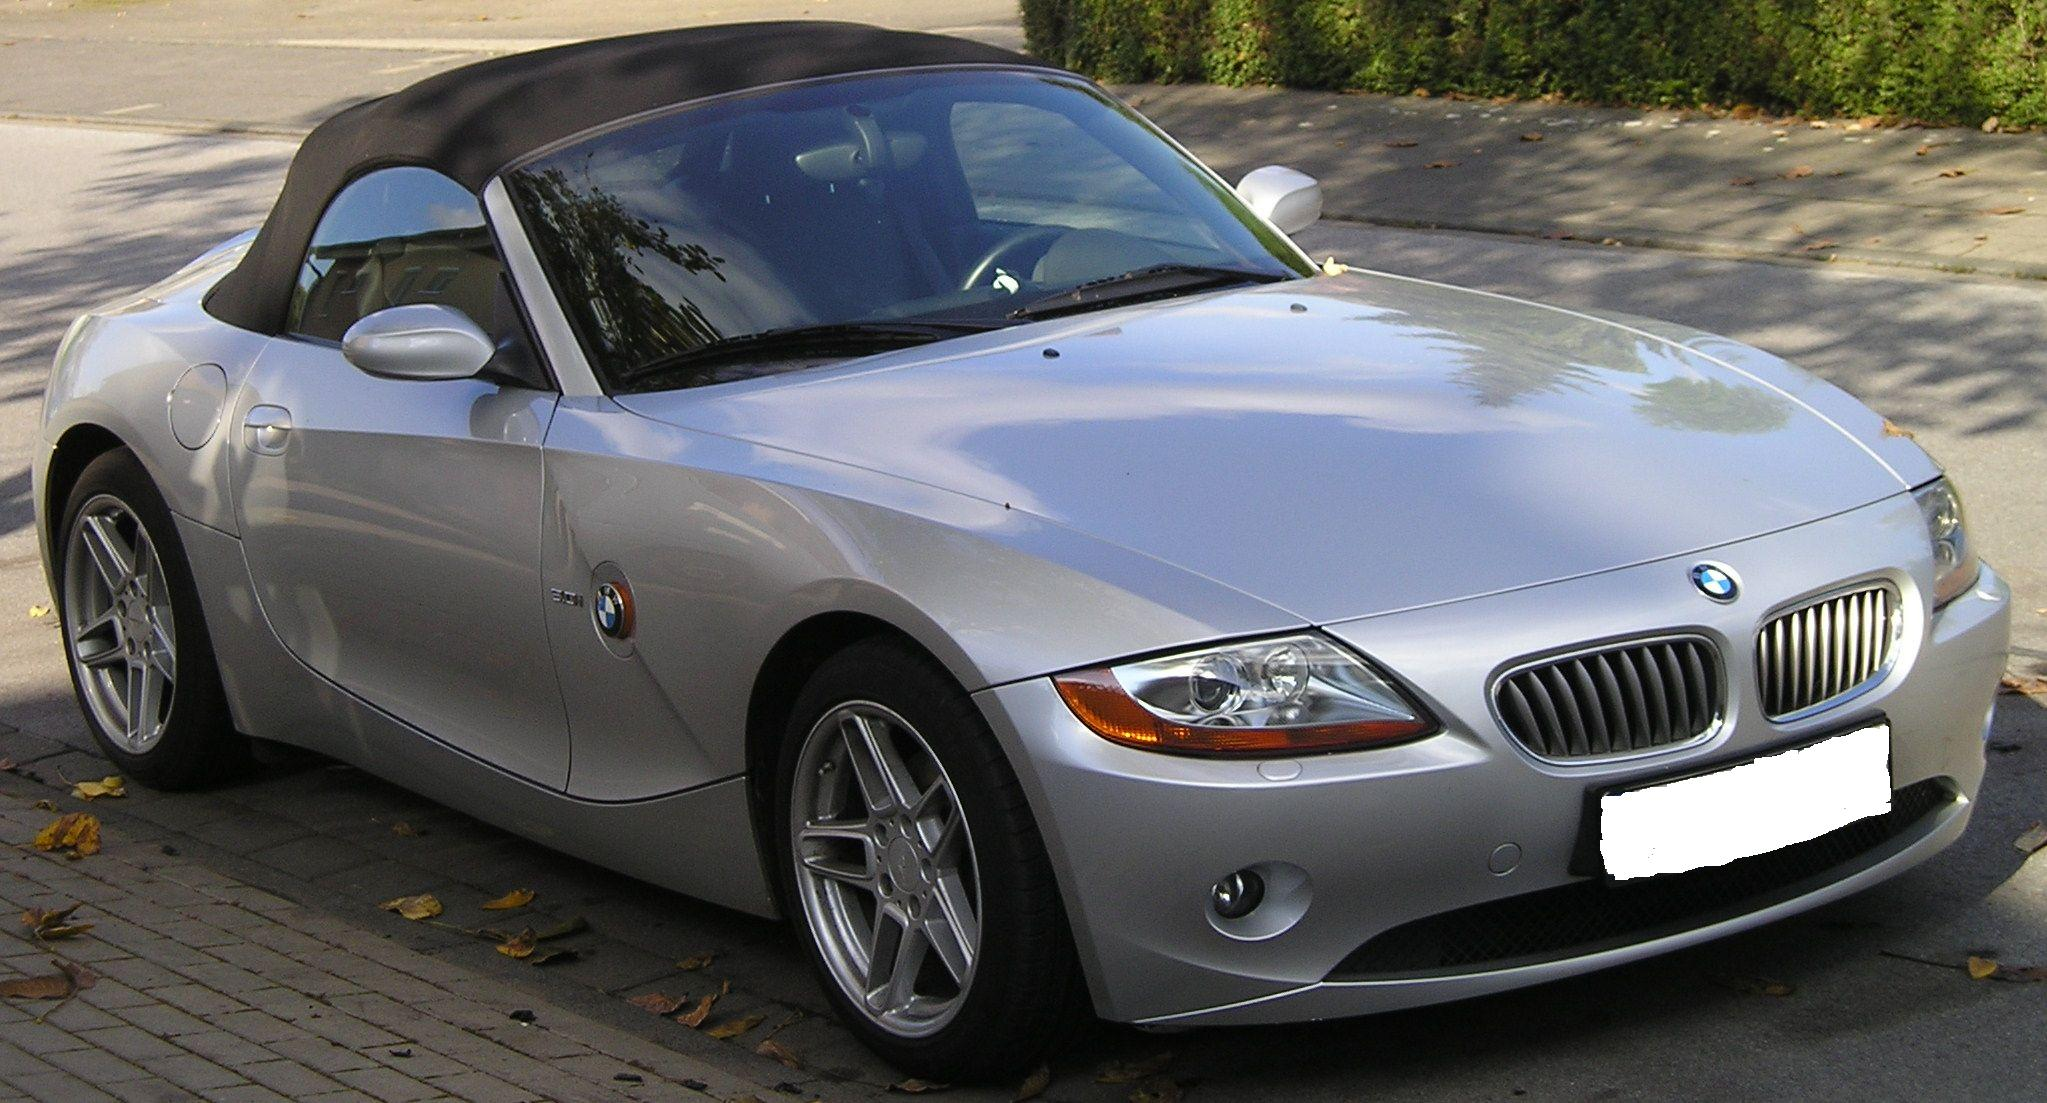 2007 Bmw Z4 Information And Photos Momentcar